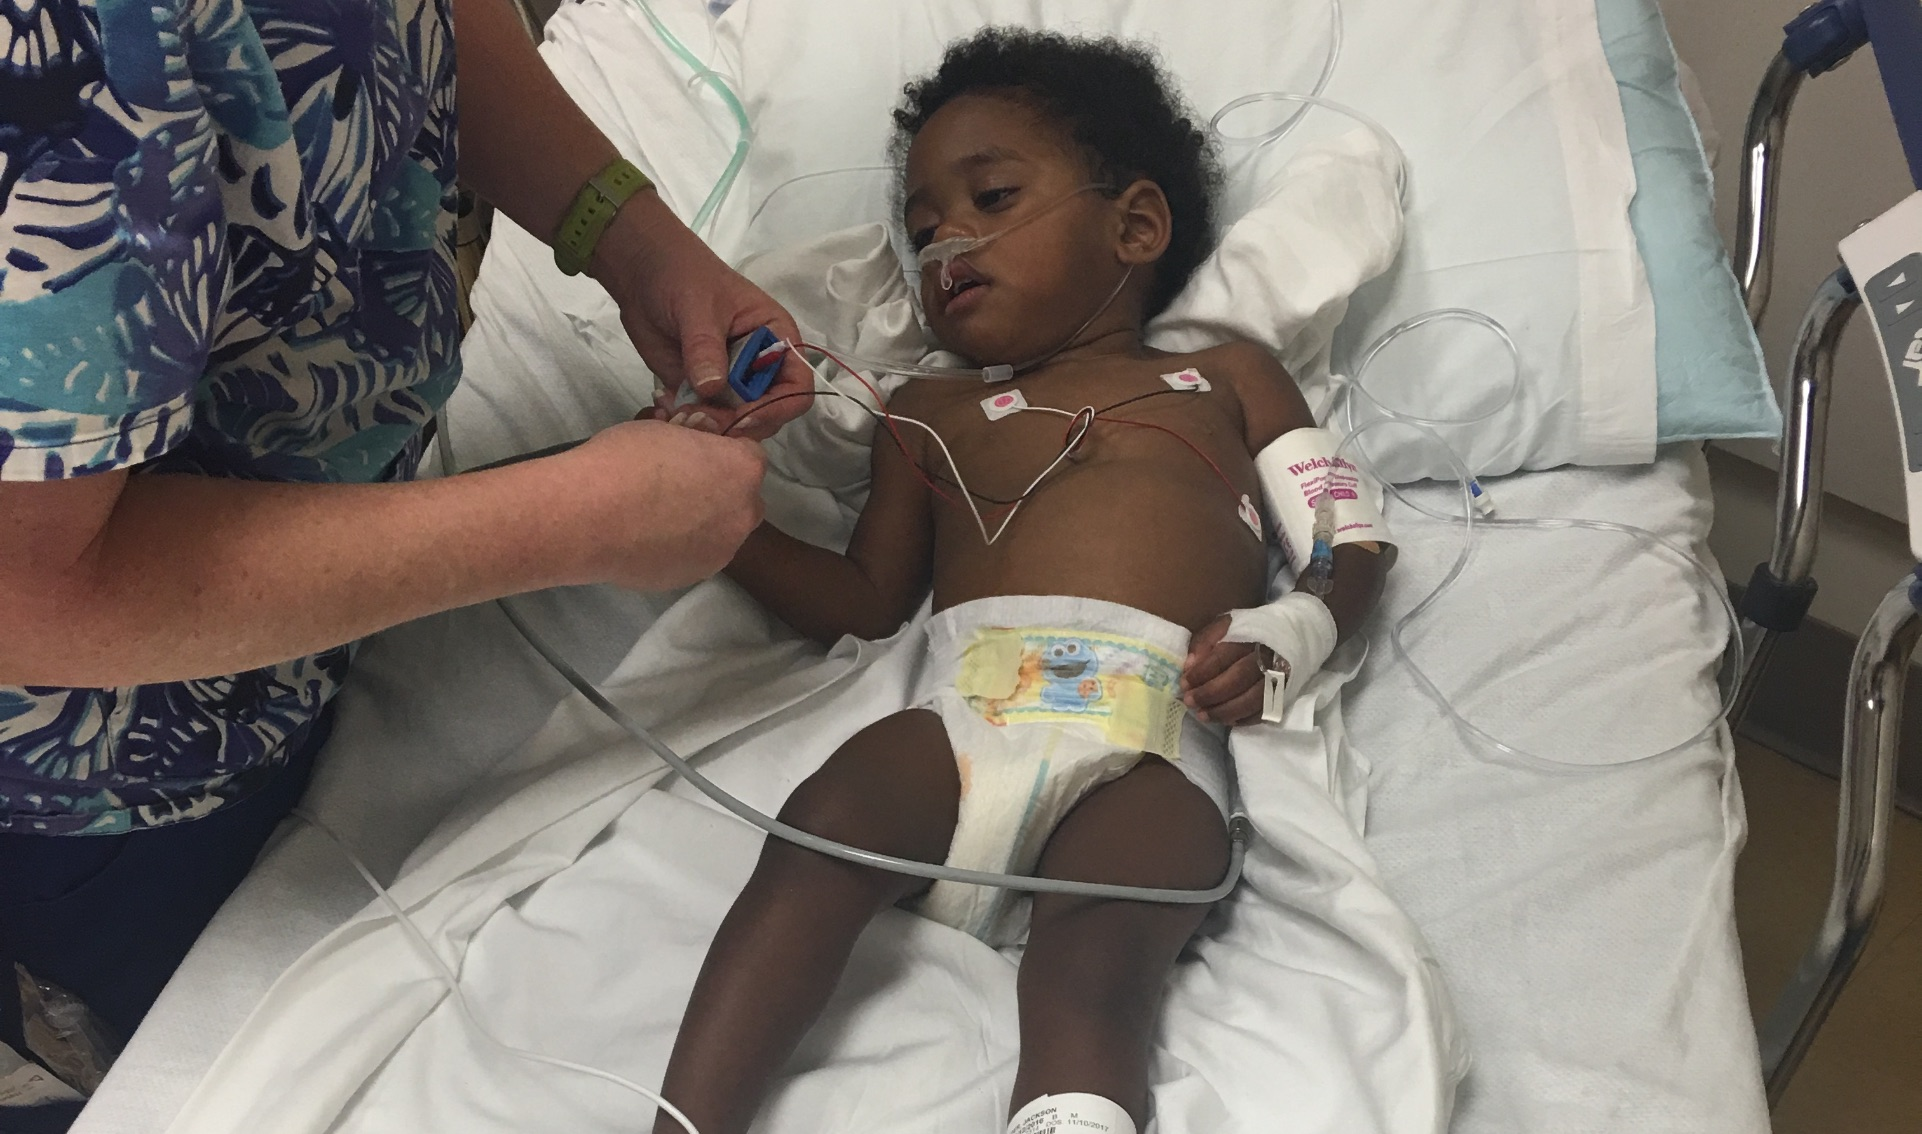 A photo of Jackson when he was in the hospital as a two-year-old, with a nurse at his side adjusting the wires attached to body to monitor his vitals.